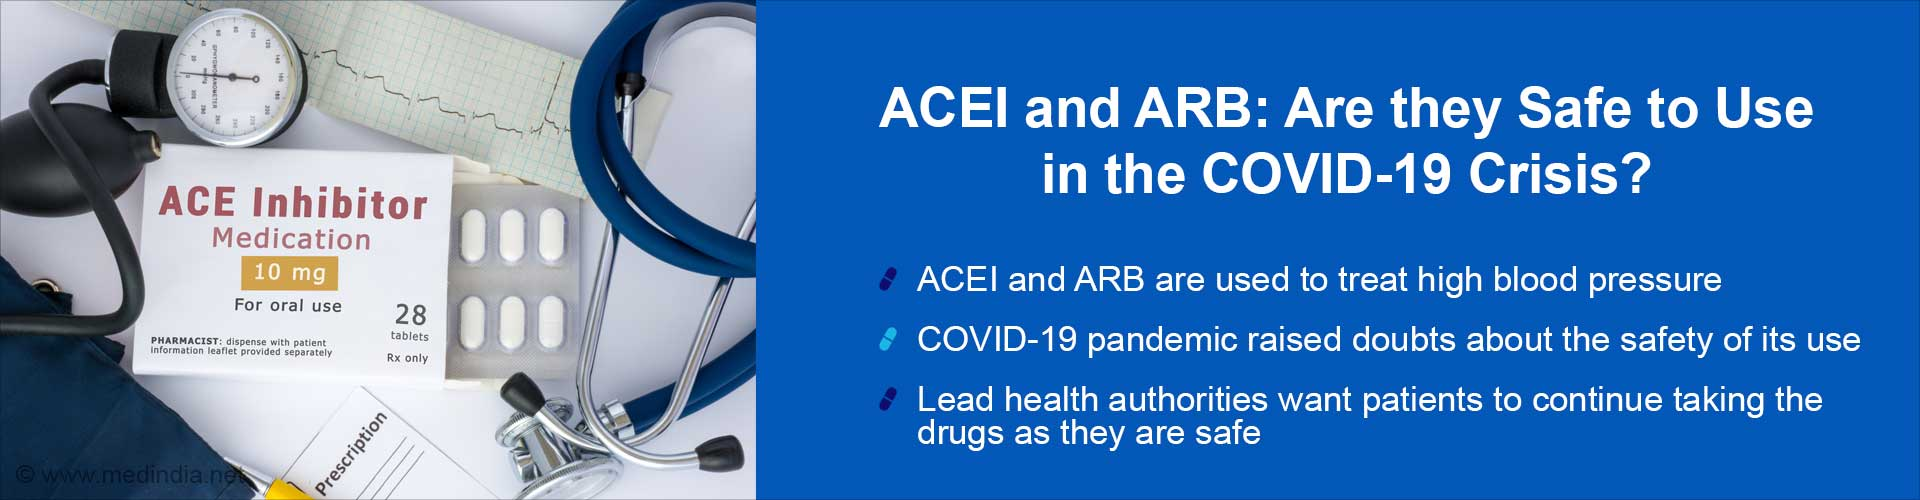 Should ACEI and ARB be Prescribed During the COVID-19 Pandemic?